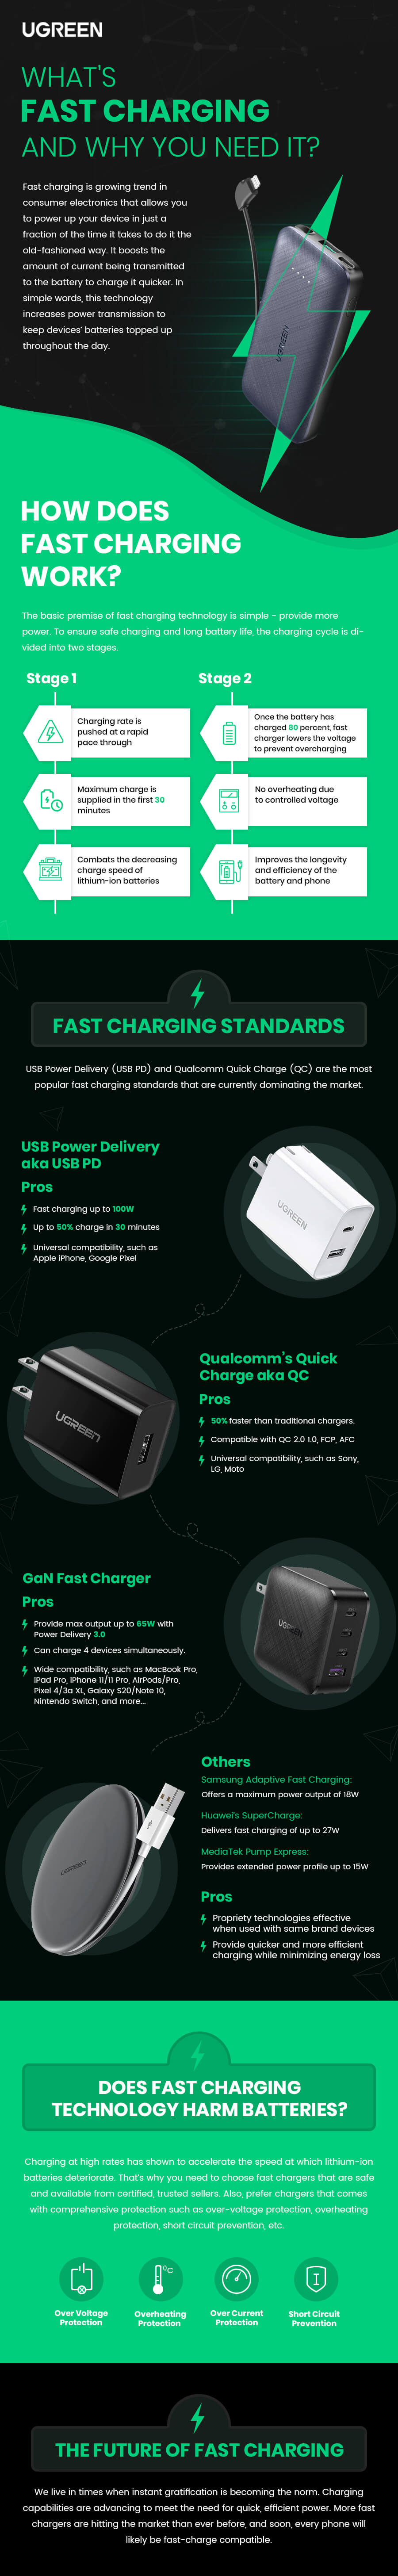 Fast Charging Infographic